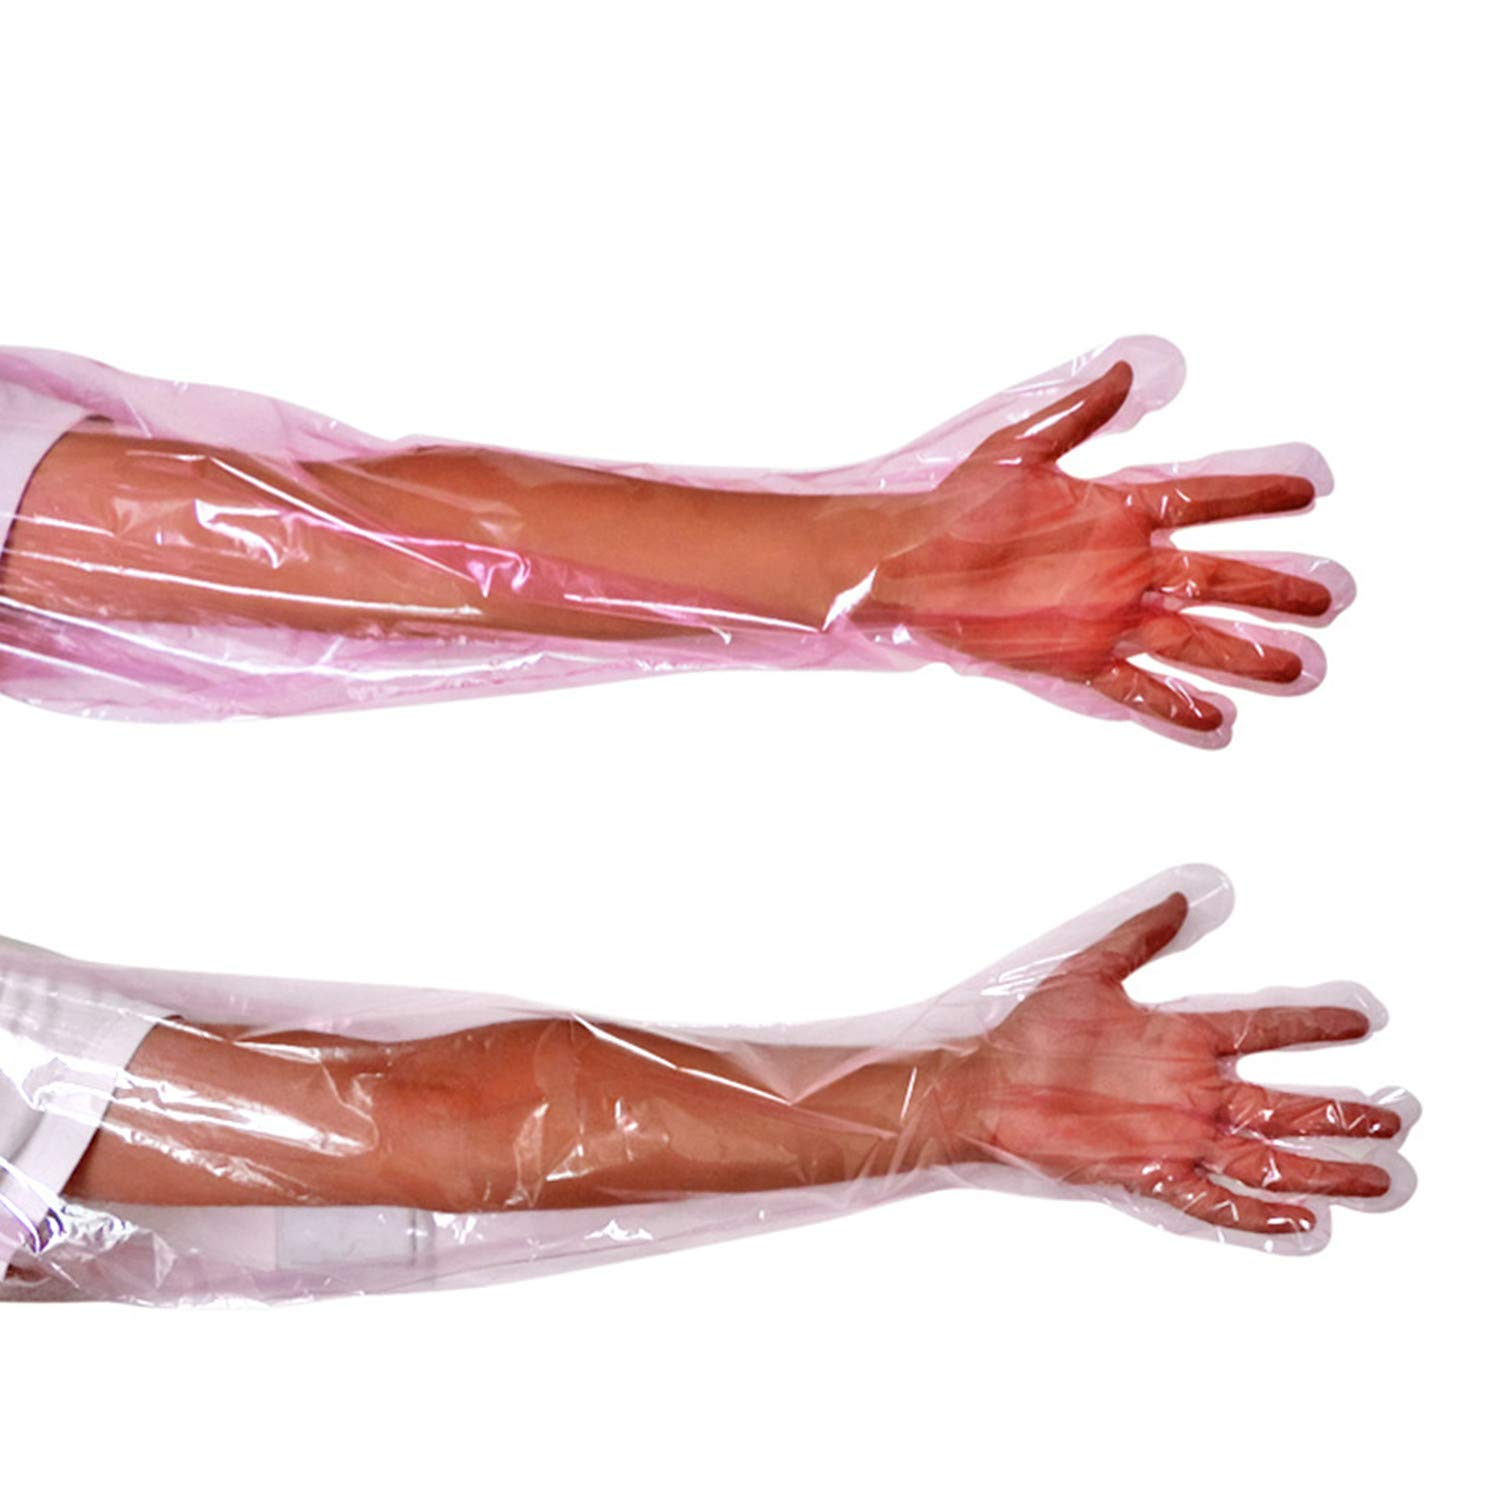 50 Pcs Disposable Soft Plastic Film Gloves Long Arm Veterinary Examination Artificial Insemination Glove by PPX by PPX (Image #5)